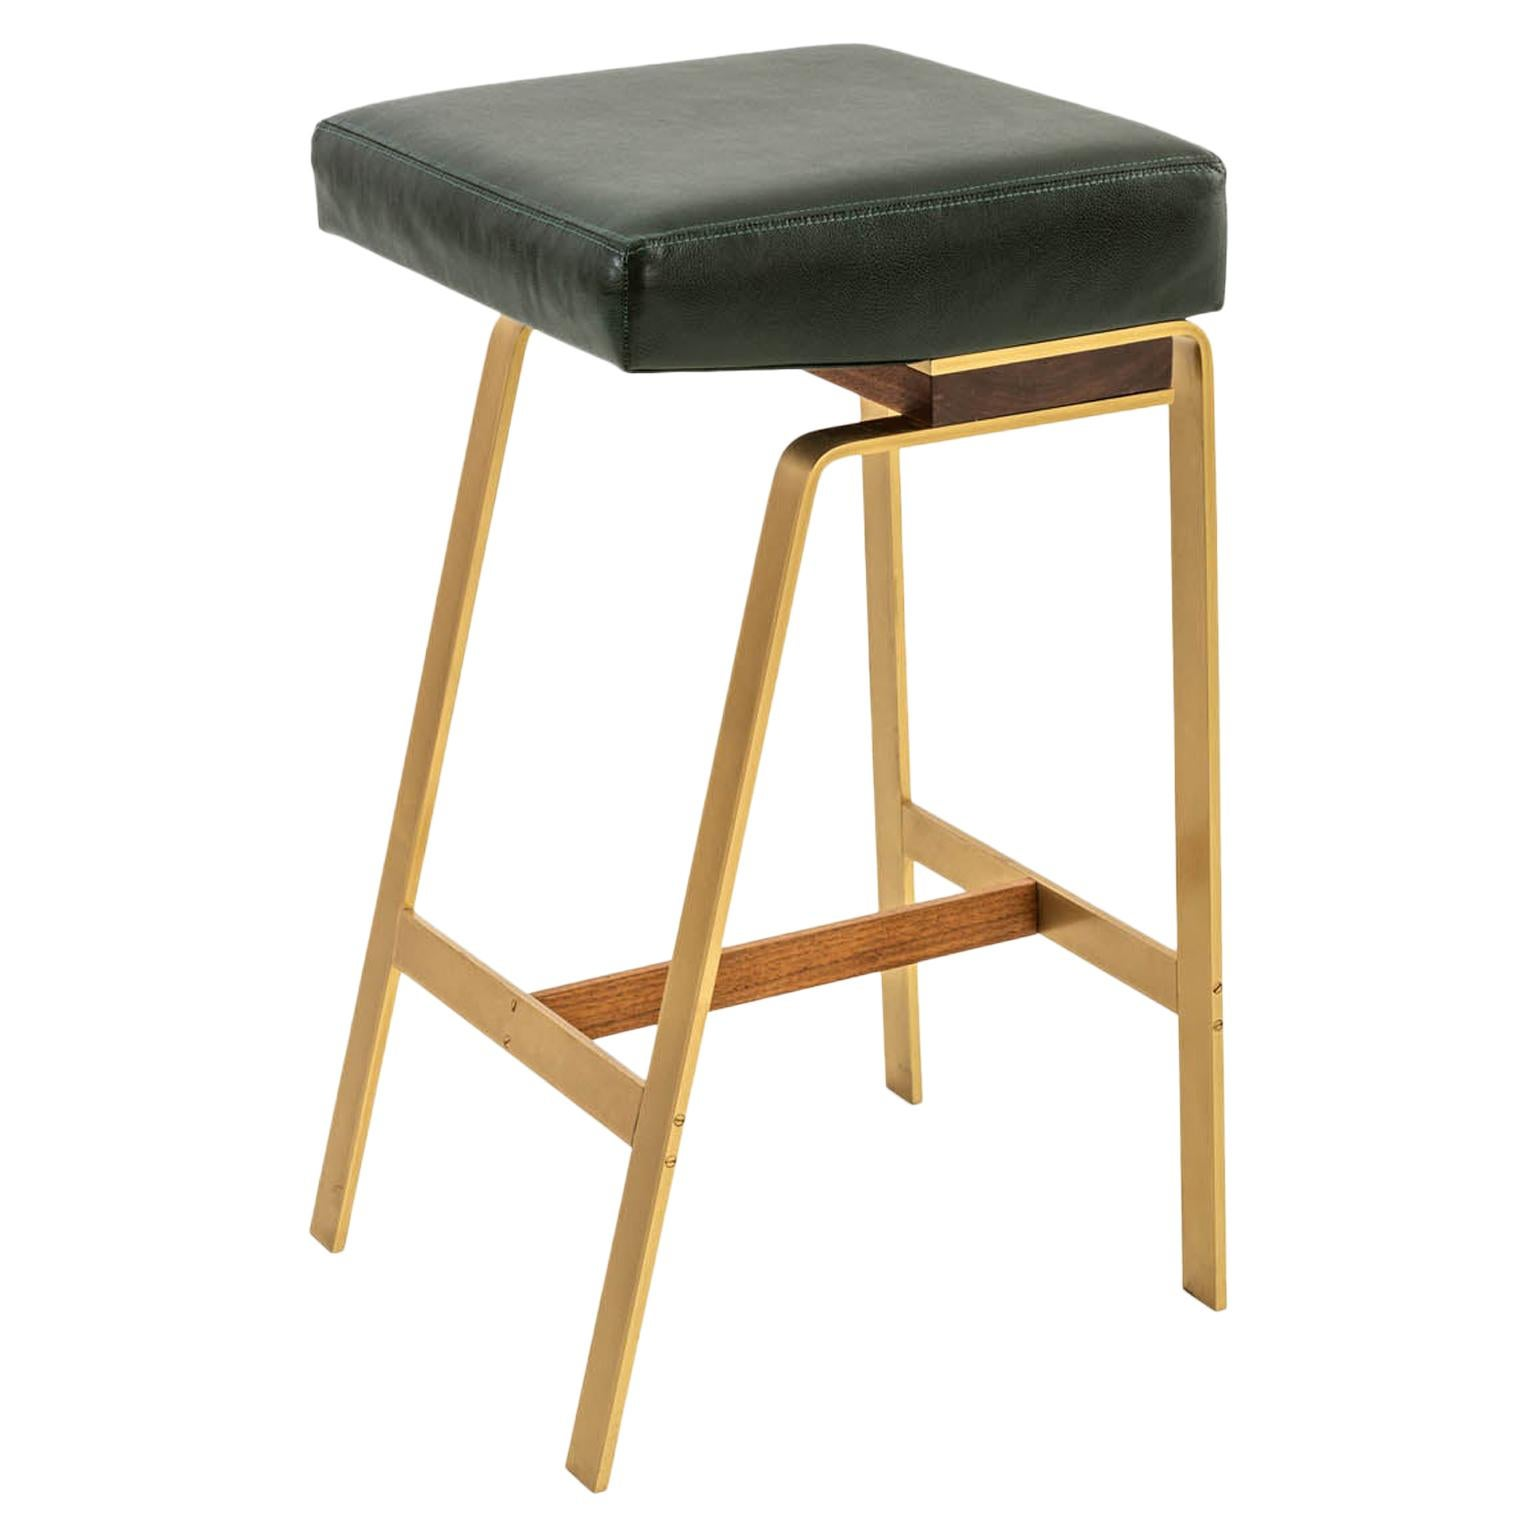 Marvelous Gavilan Barstool Nickel With Walnut Details And Chocolate Brown Leather Andrewgaddart Wooden Chair Designs For Living Room Andrewgaddartcom